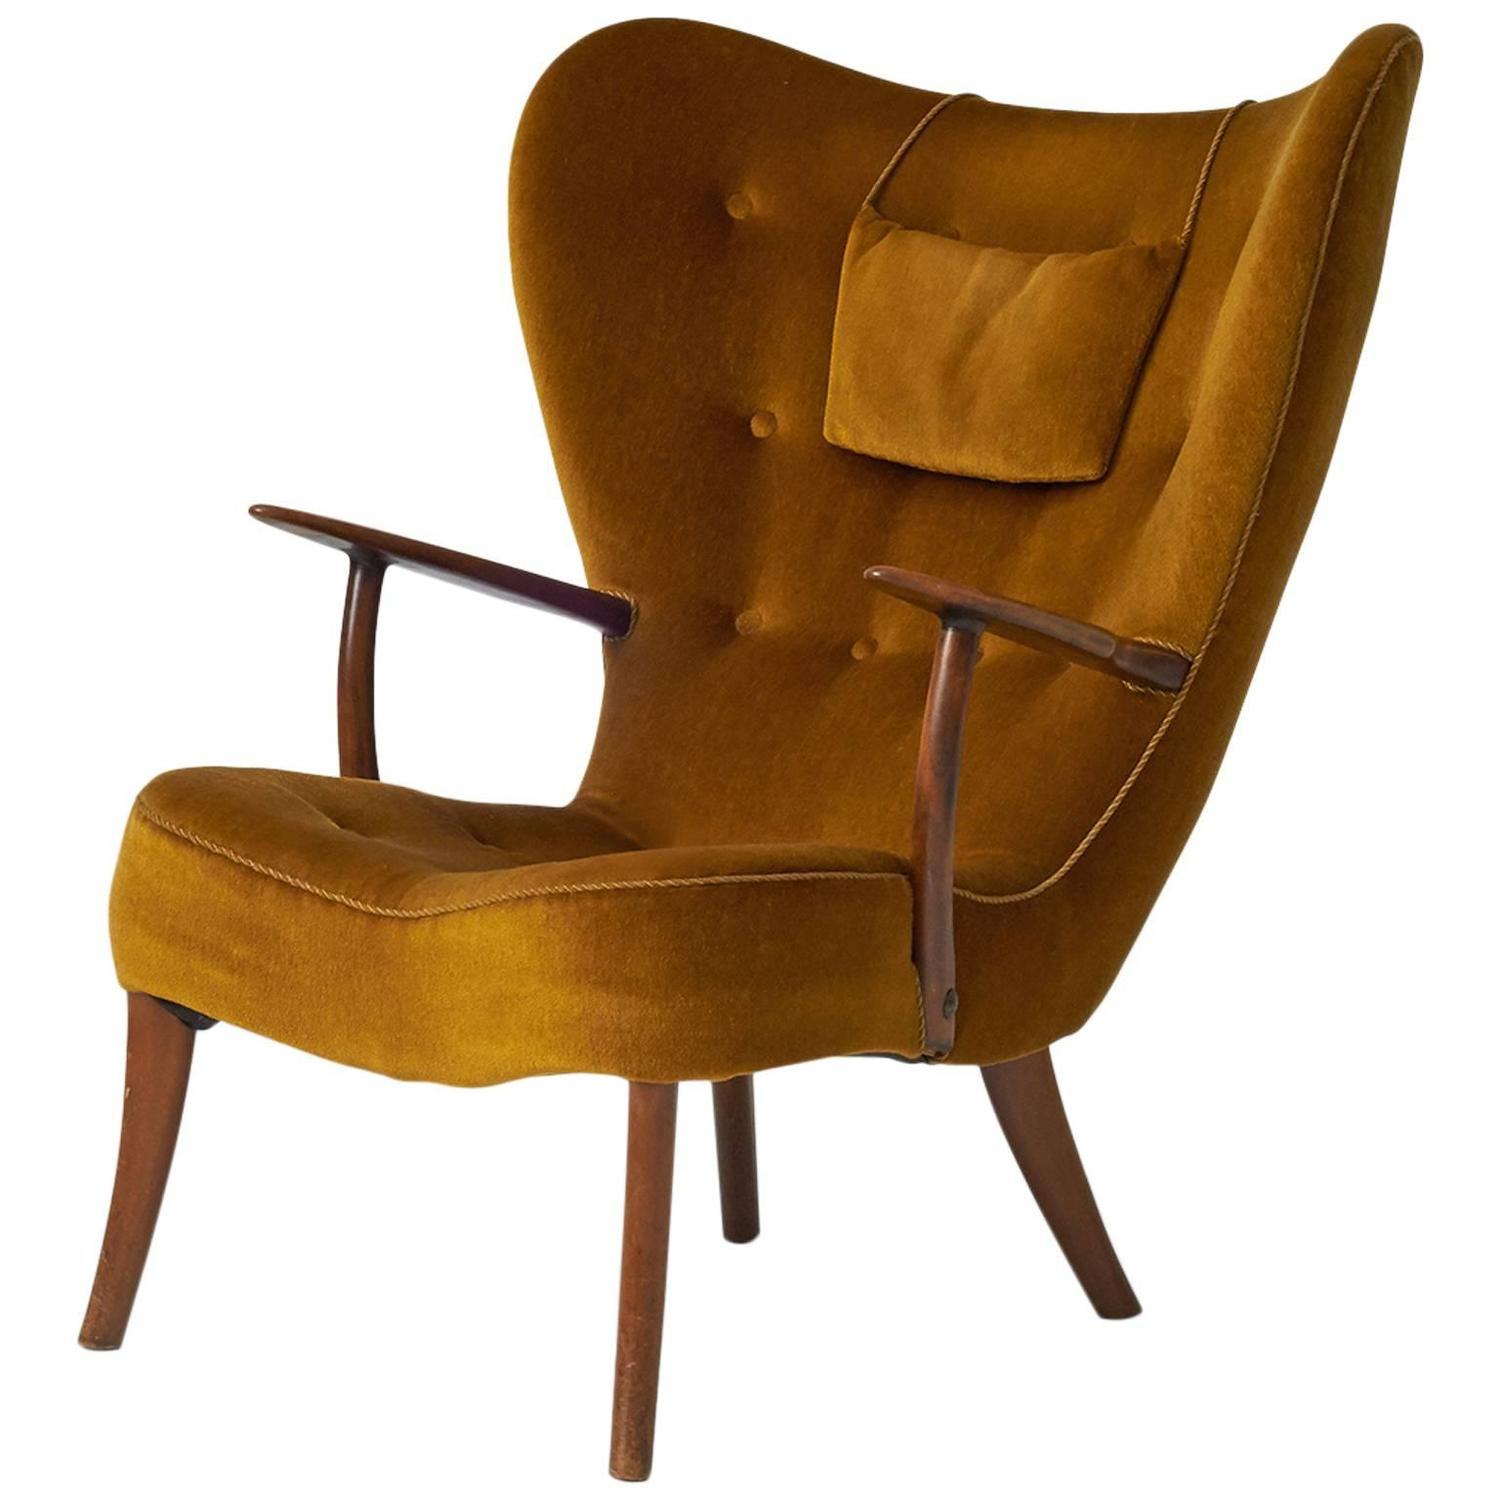 Swedish Mid Century Furniture Scandinavian Furniture And Danish Modern Design Collection At 1stdibs